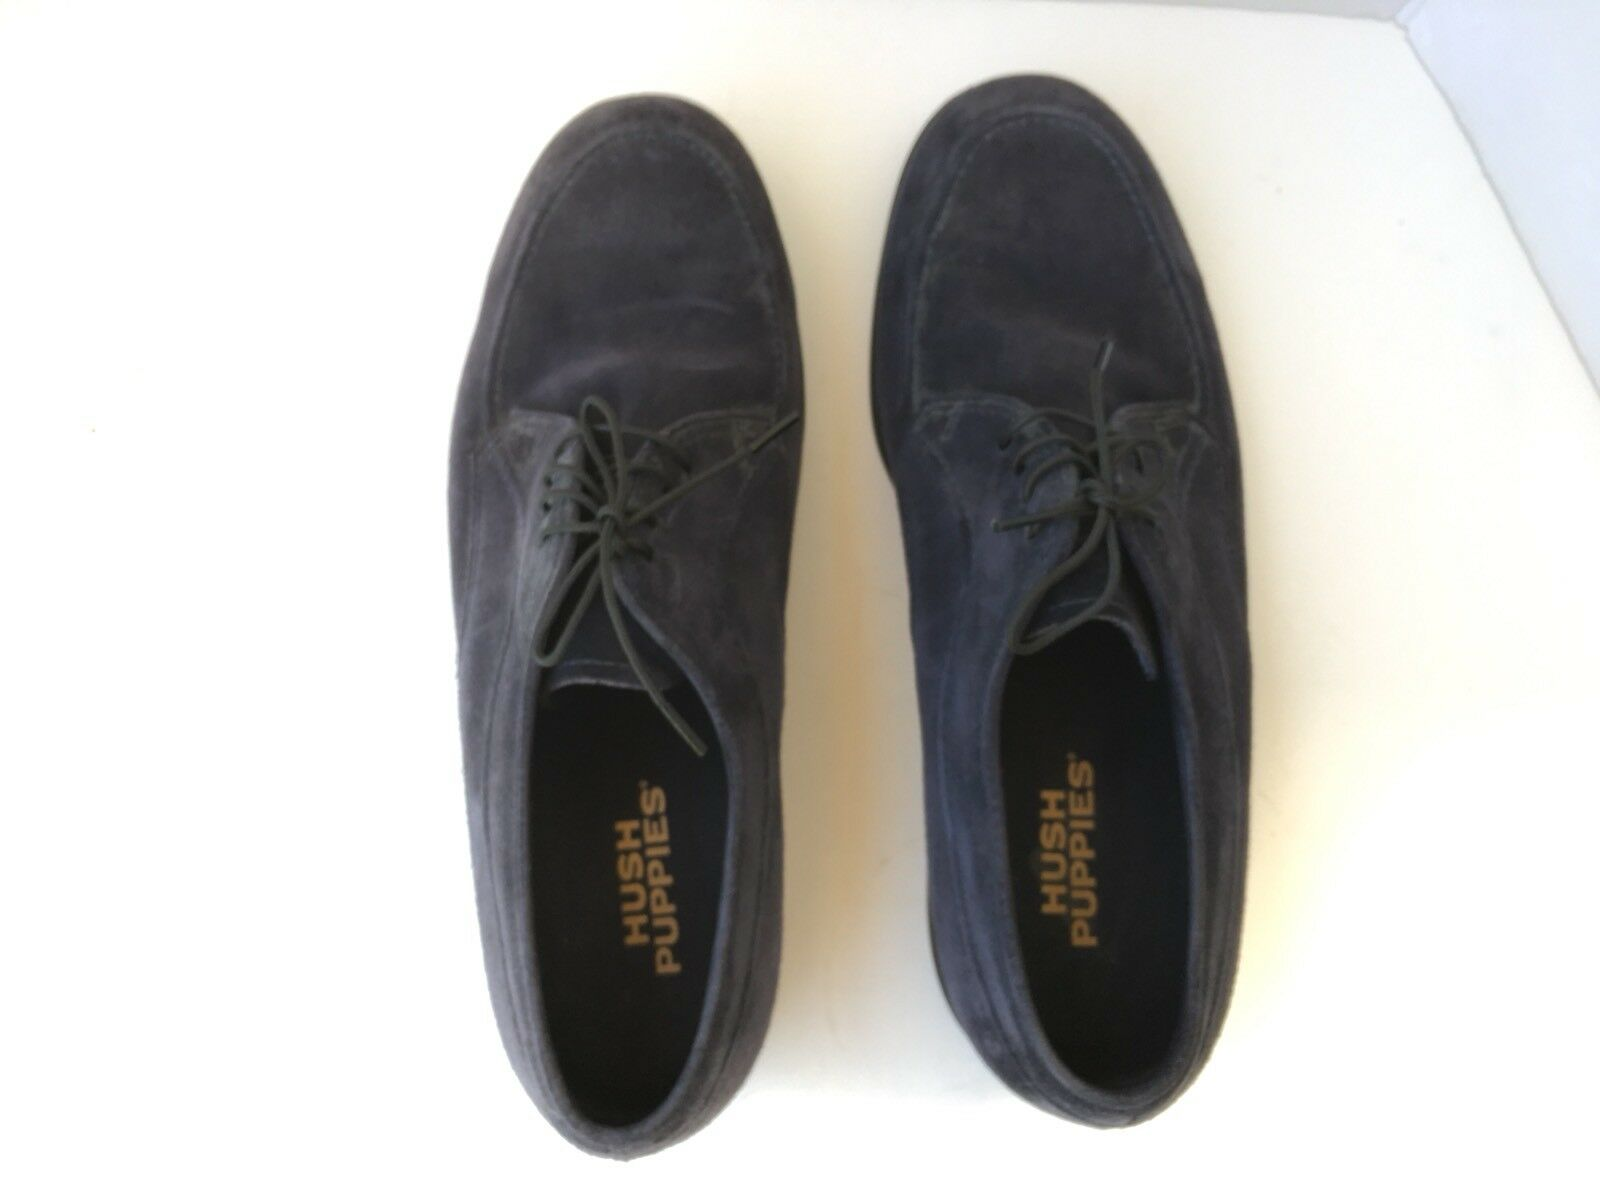 Hush Puppies Mens Lace Up shoes 10.5 M  bluee Suede Oxford